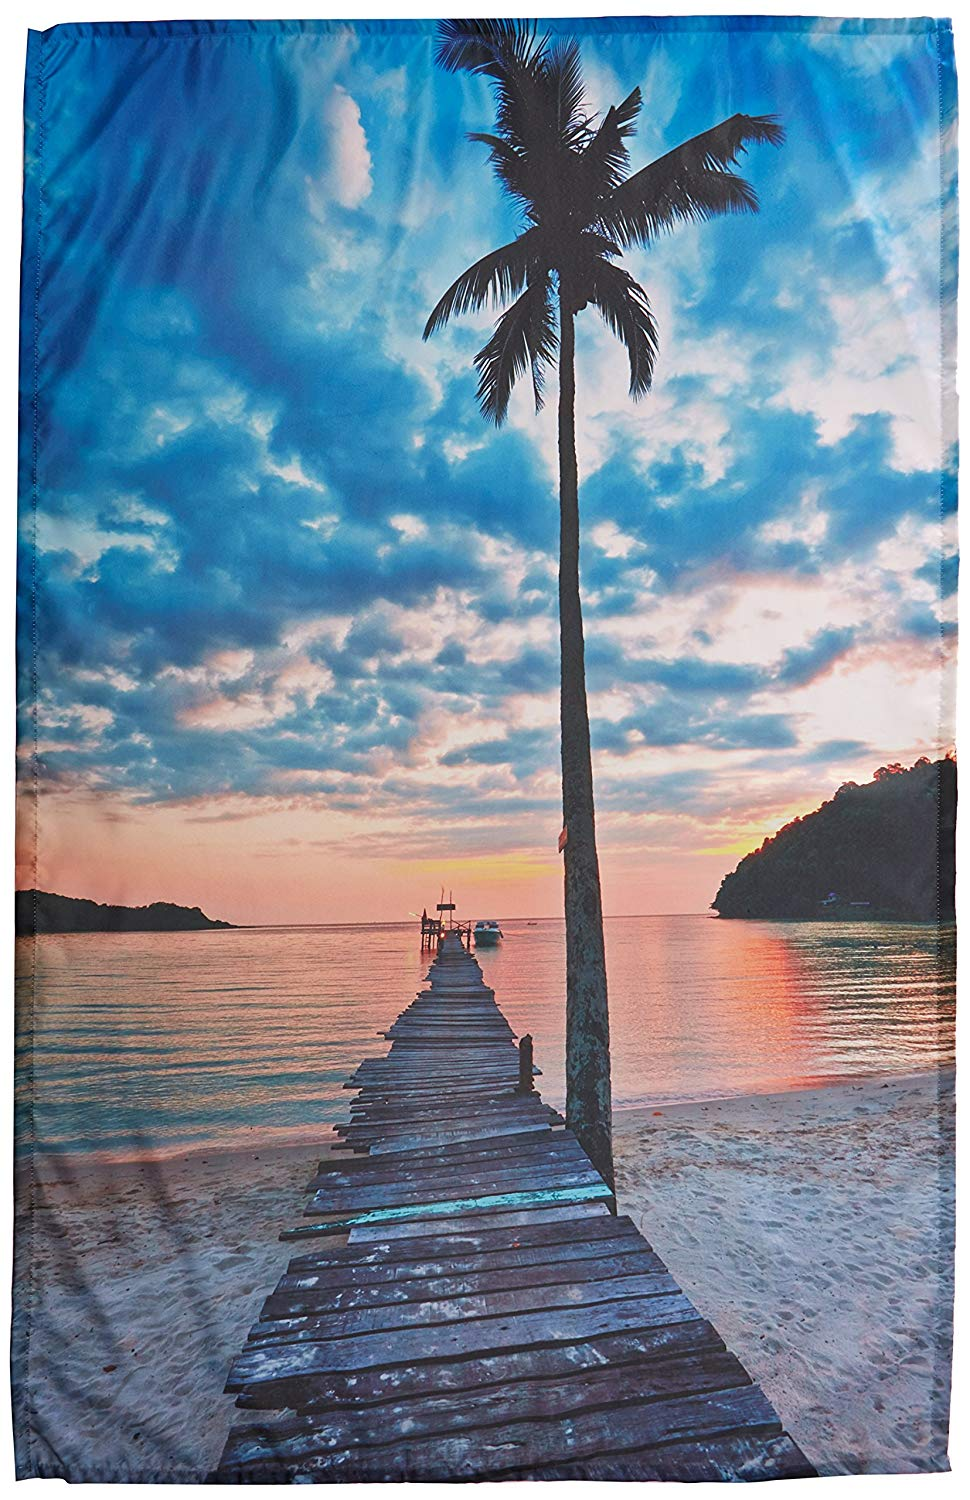 Palm Trees Tropical Island Ocean Wooden Bridge Dock Wall Decor Art Pictures Palms Sunset Sky Decor for Living Room Tapestry